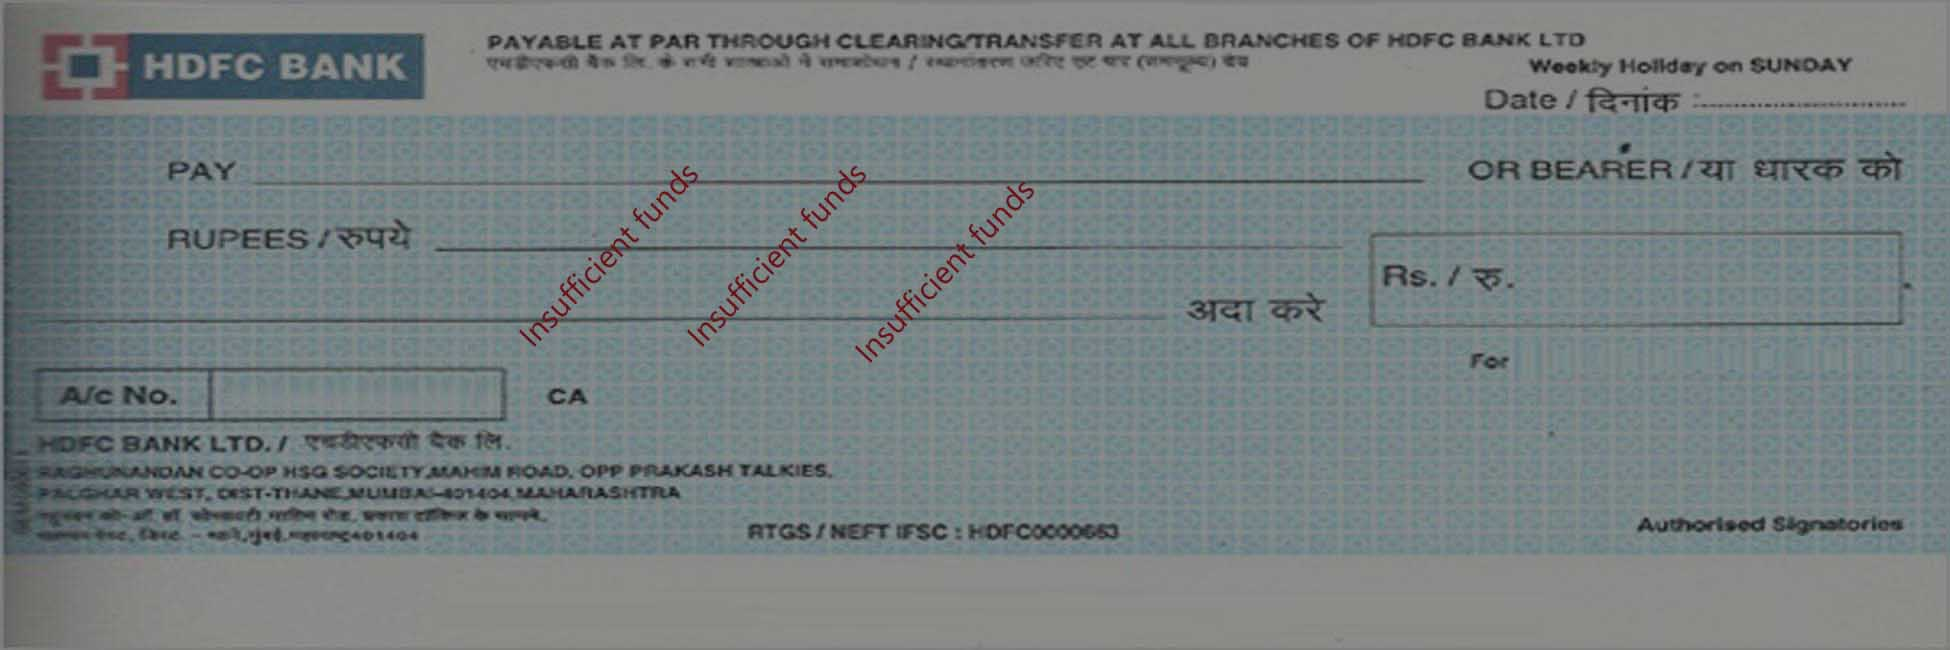 lawyers for dishoner of cheque